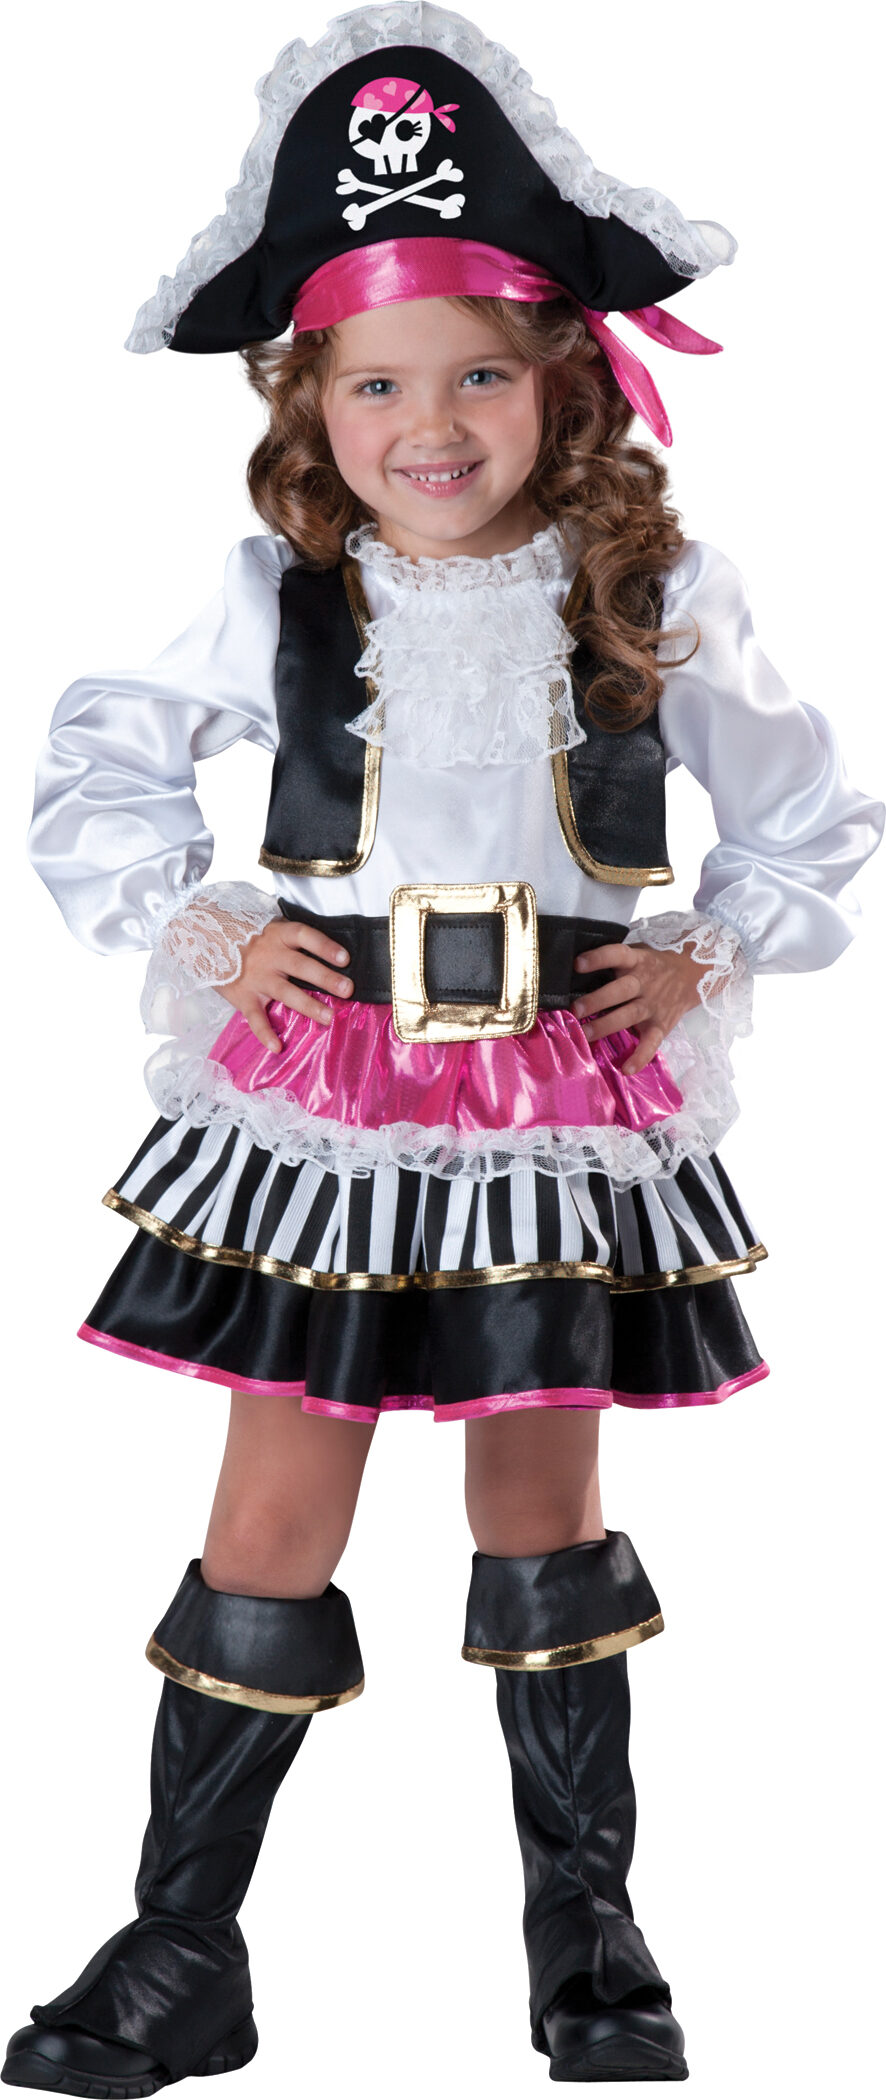 sc 1 st  Mr. Costumes & Precious Pirate Girl Kids Costume - Mr. Costumes